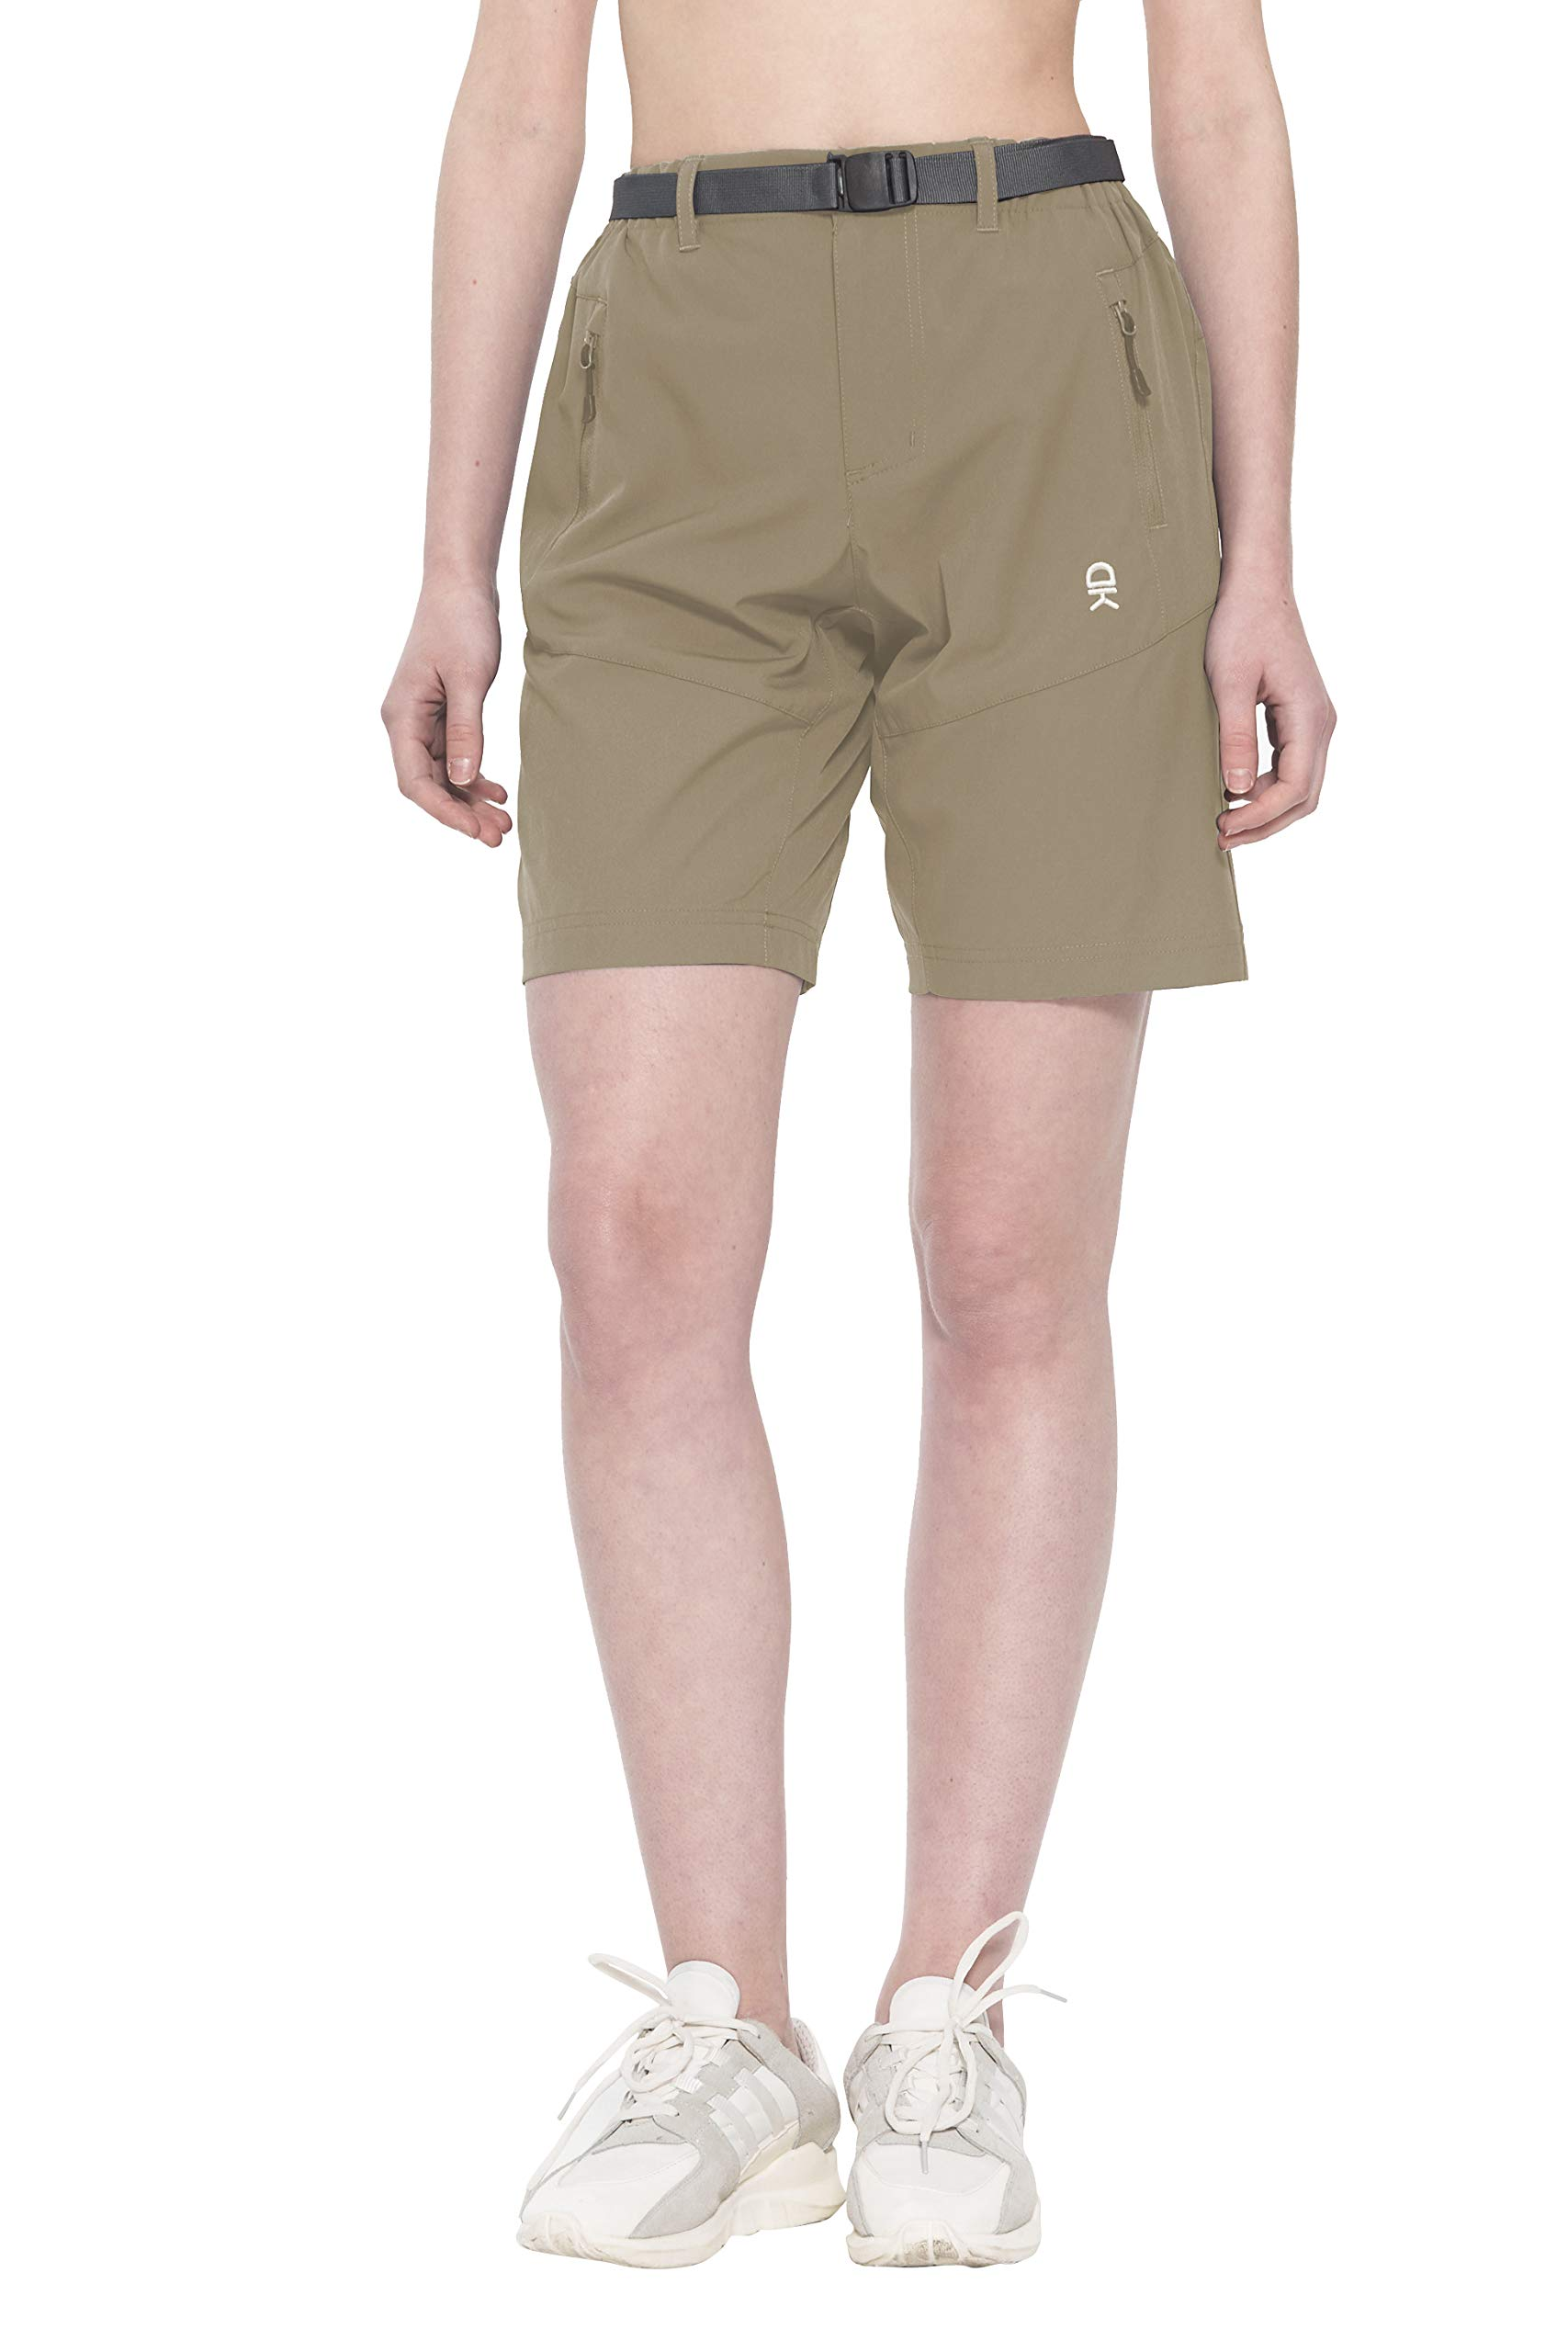 Little Donkey Andy Women's Stretch Quick Dry Cargo Shorts for Hiking, Camping, Travel Black Size S